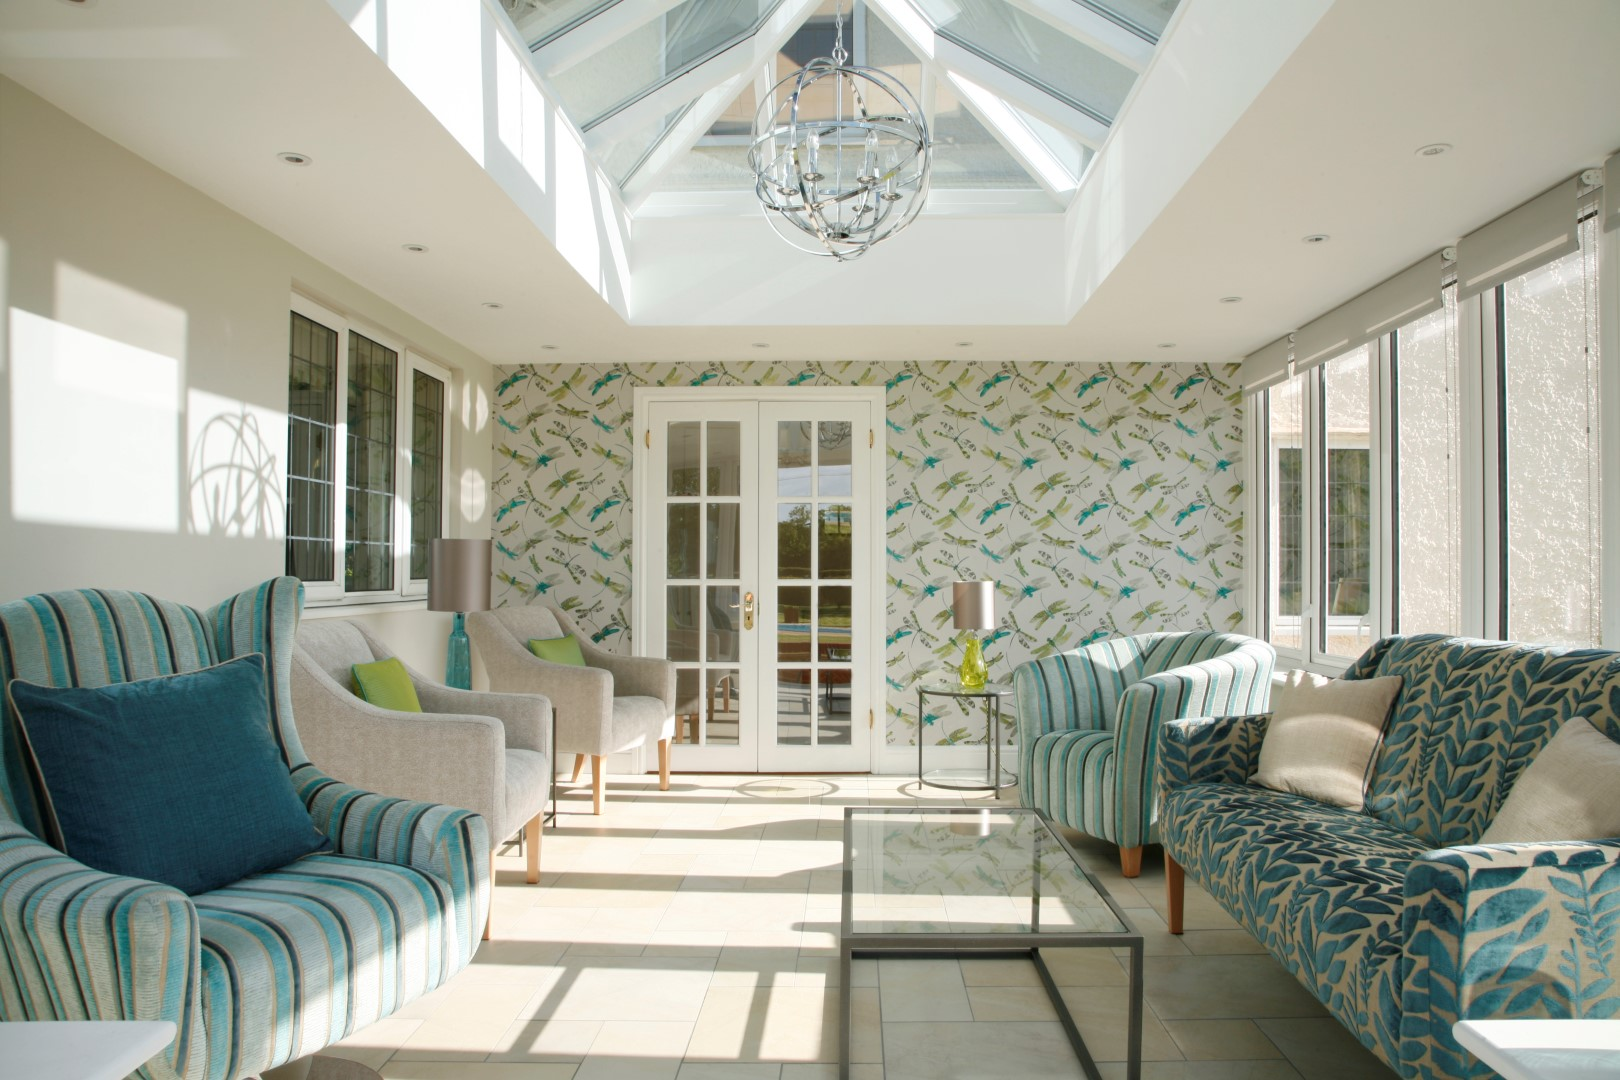 Jenny junior interiors hertfordshire interior design for Interior designs com